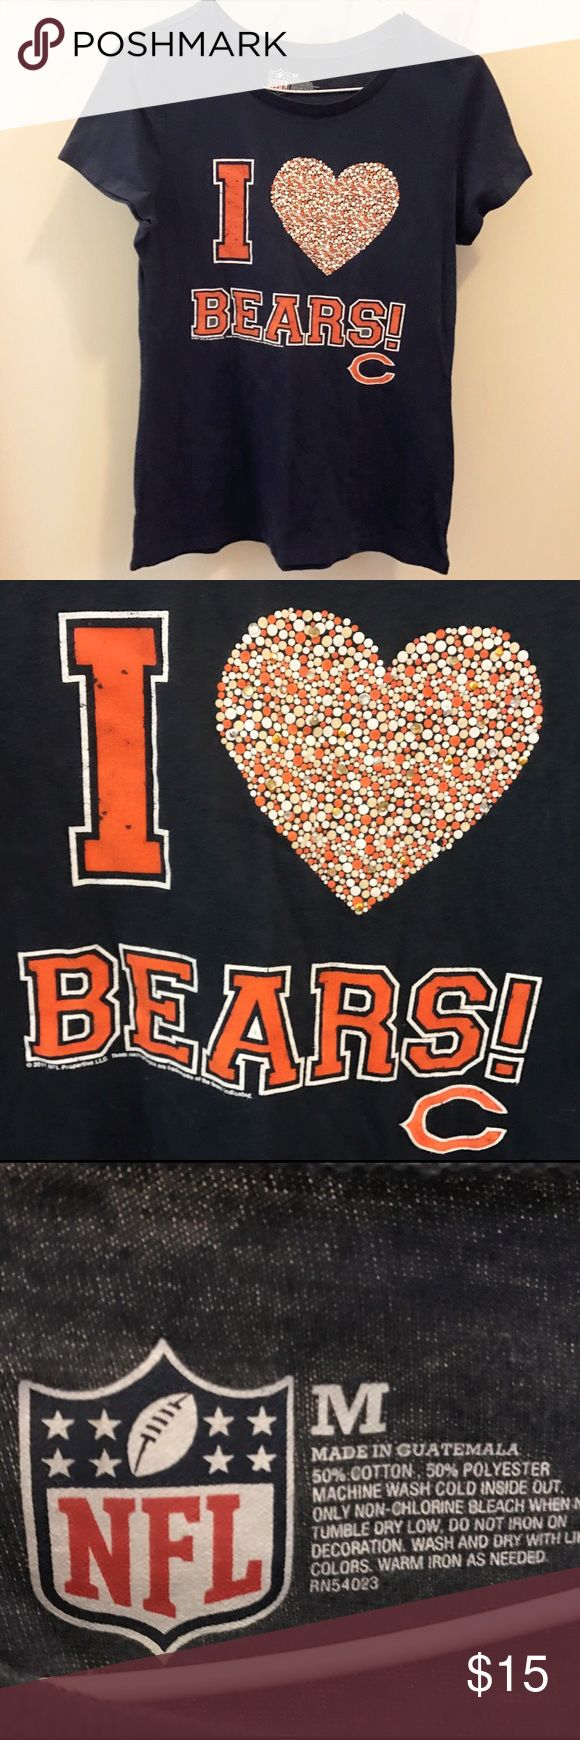 NFL Chicago Bears Tee Shirt Shoe off your Bear pride with this super cute Chicago Bears tee! Adorable polka dotted heart with sparkly rhinestone detail.. in perfect condition! Authentic NFL tee* listed as Nike for exposure Nike Tops Tees - Short Sleeve